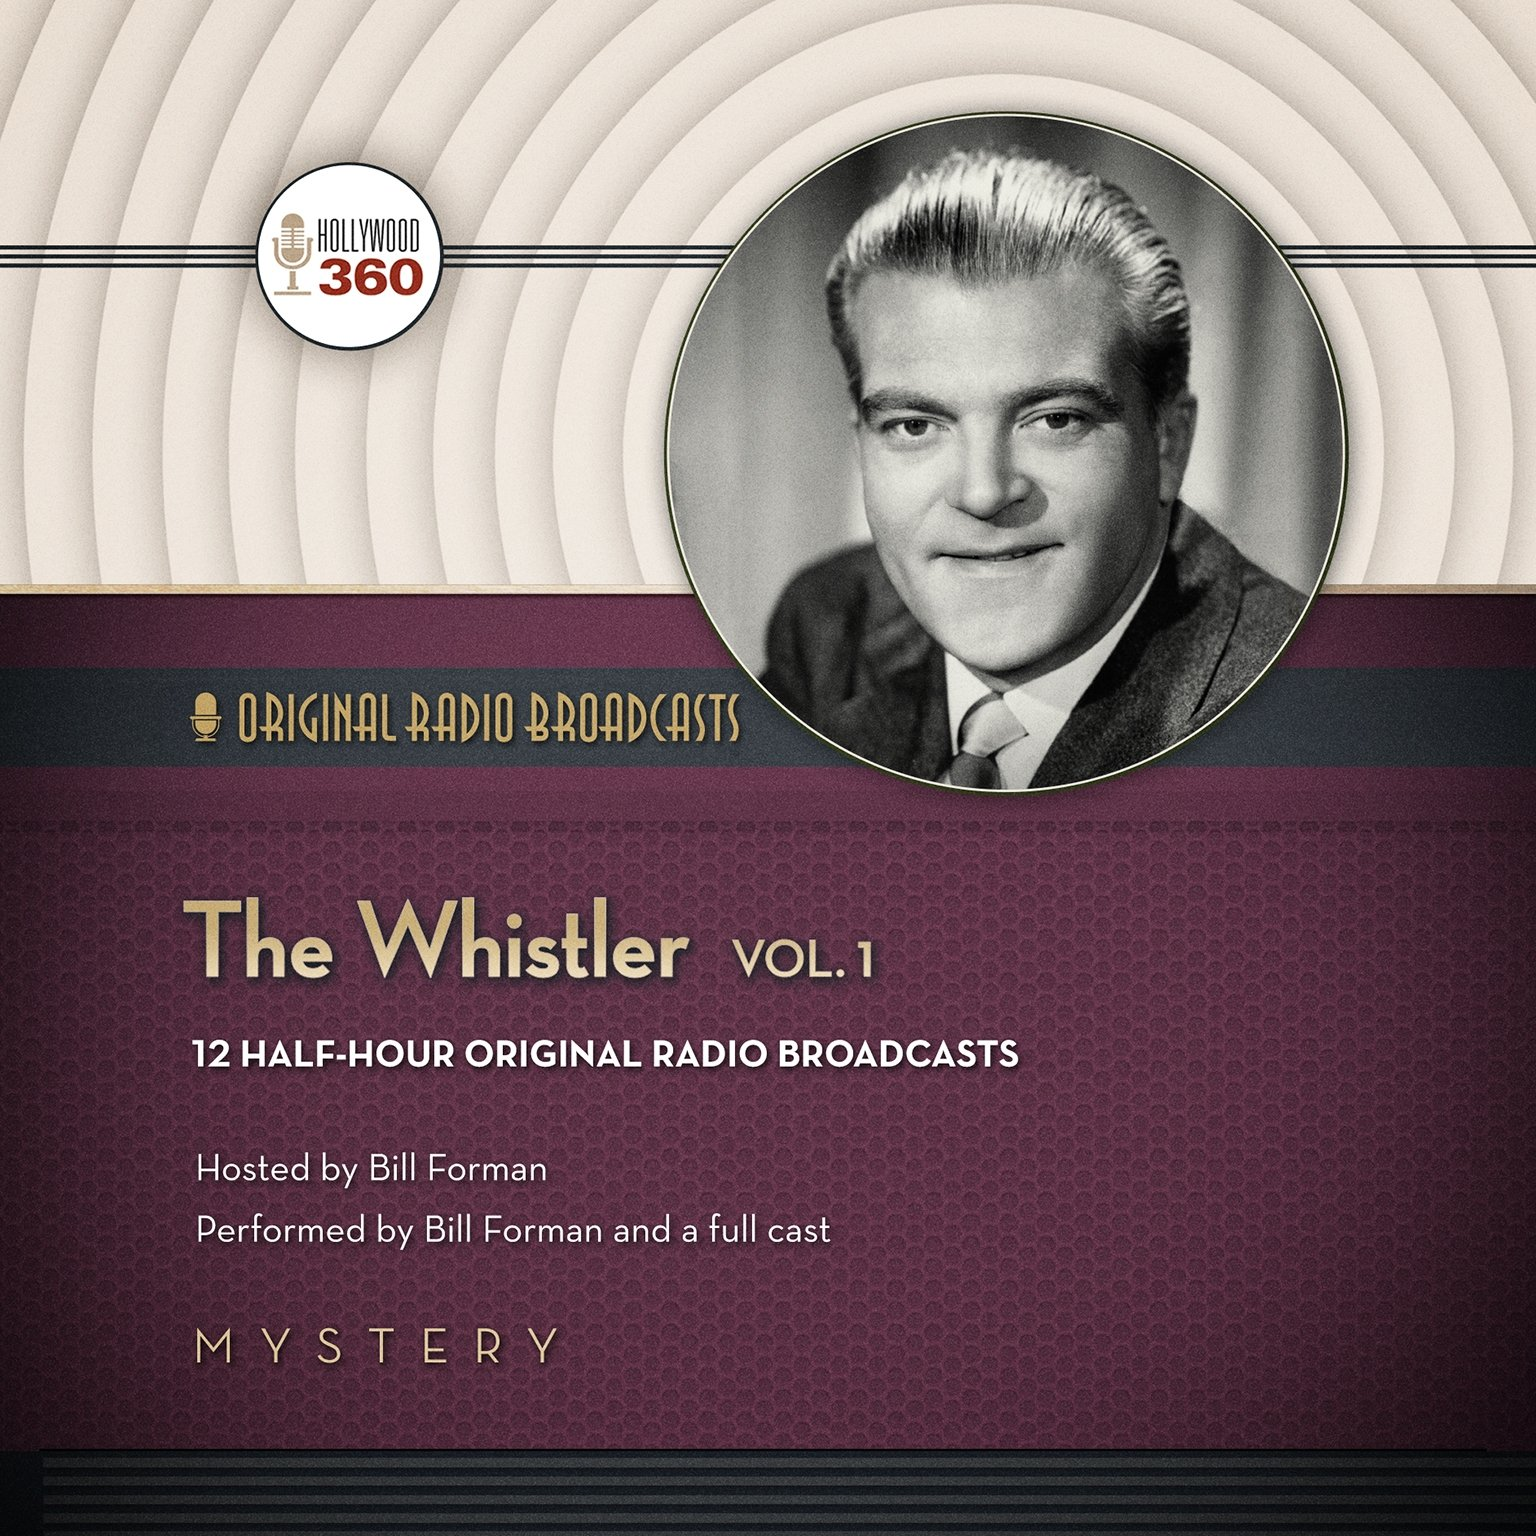 The Whistler, Volume 1 (Hollywood 360 - Classic Radio Collection